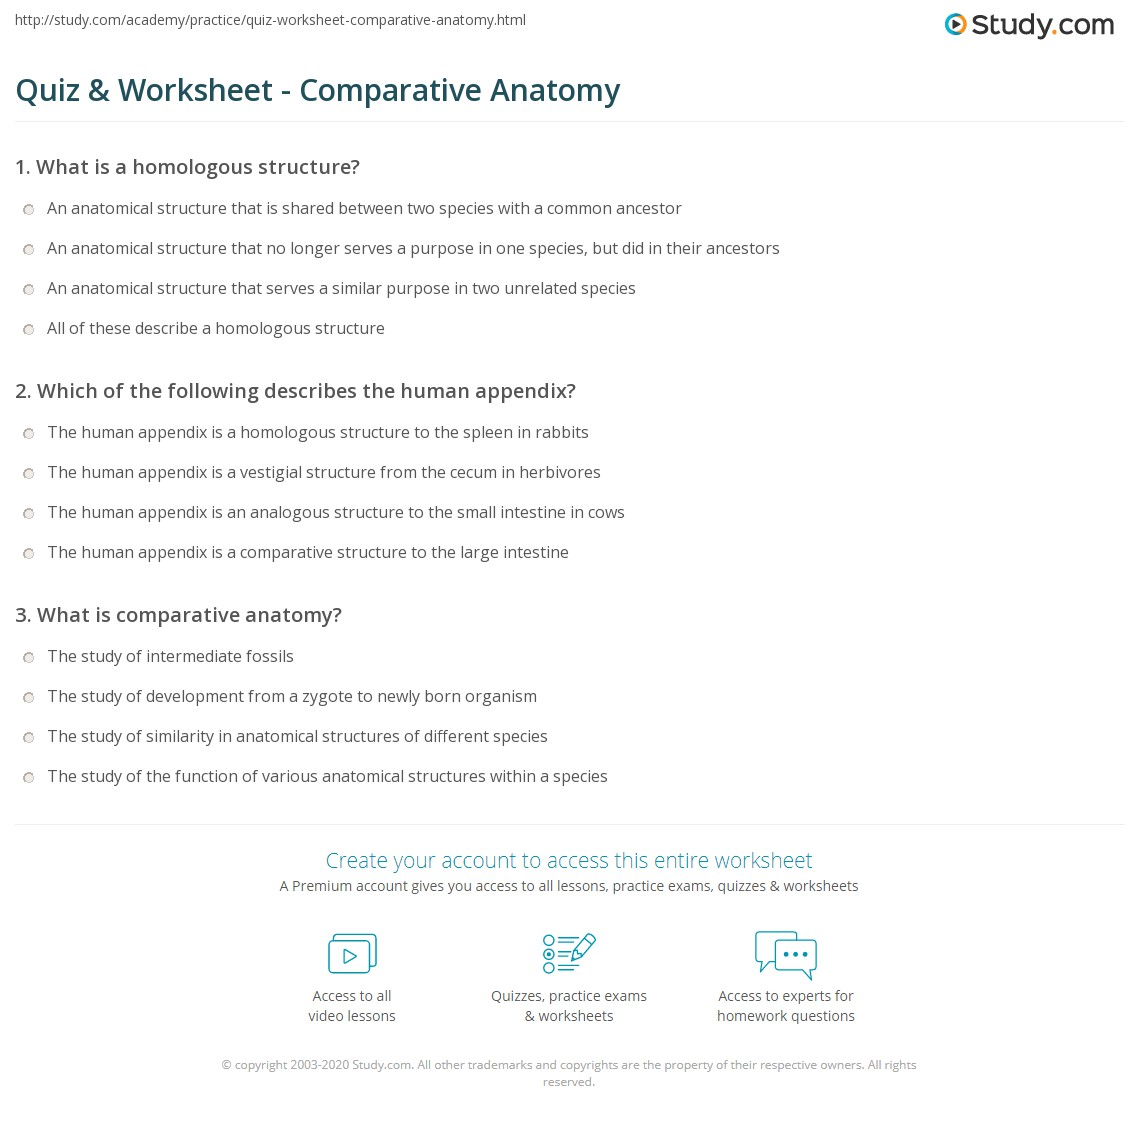 Quiz & Worksheet - Comparative Anatomy | Study.com